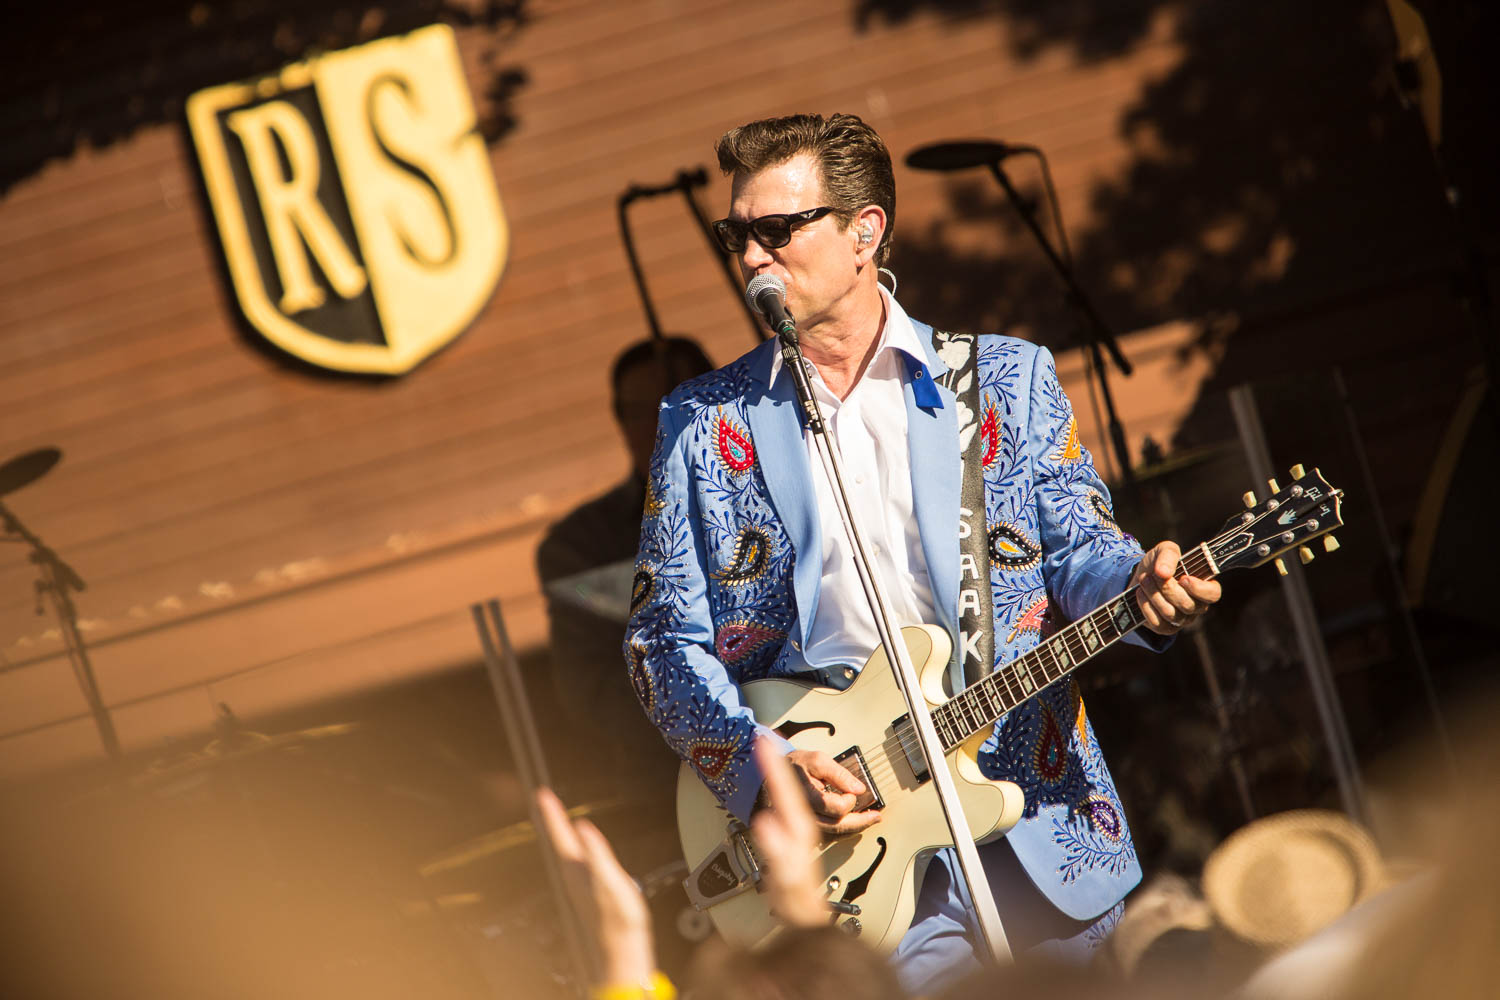 Rodney Strong Concerts 2014 2 Chris Isaak-3486.jpg